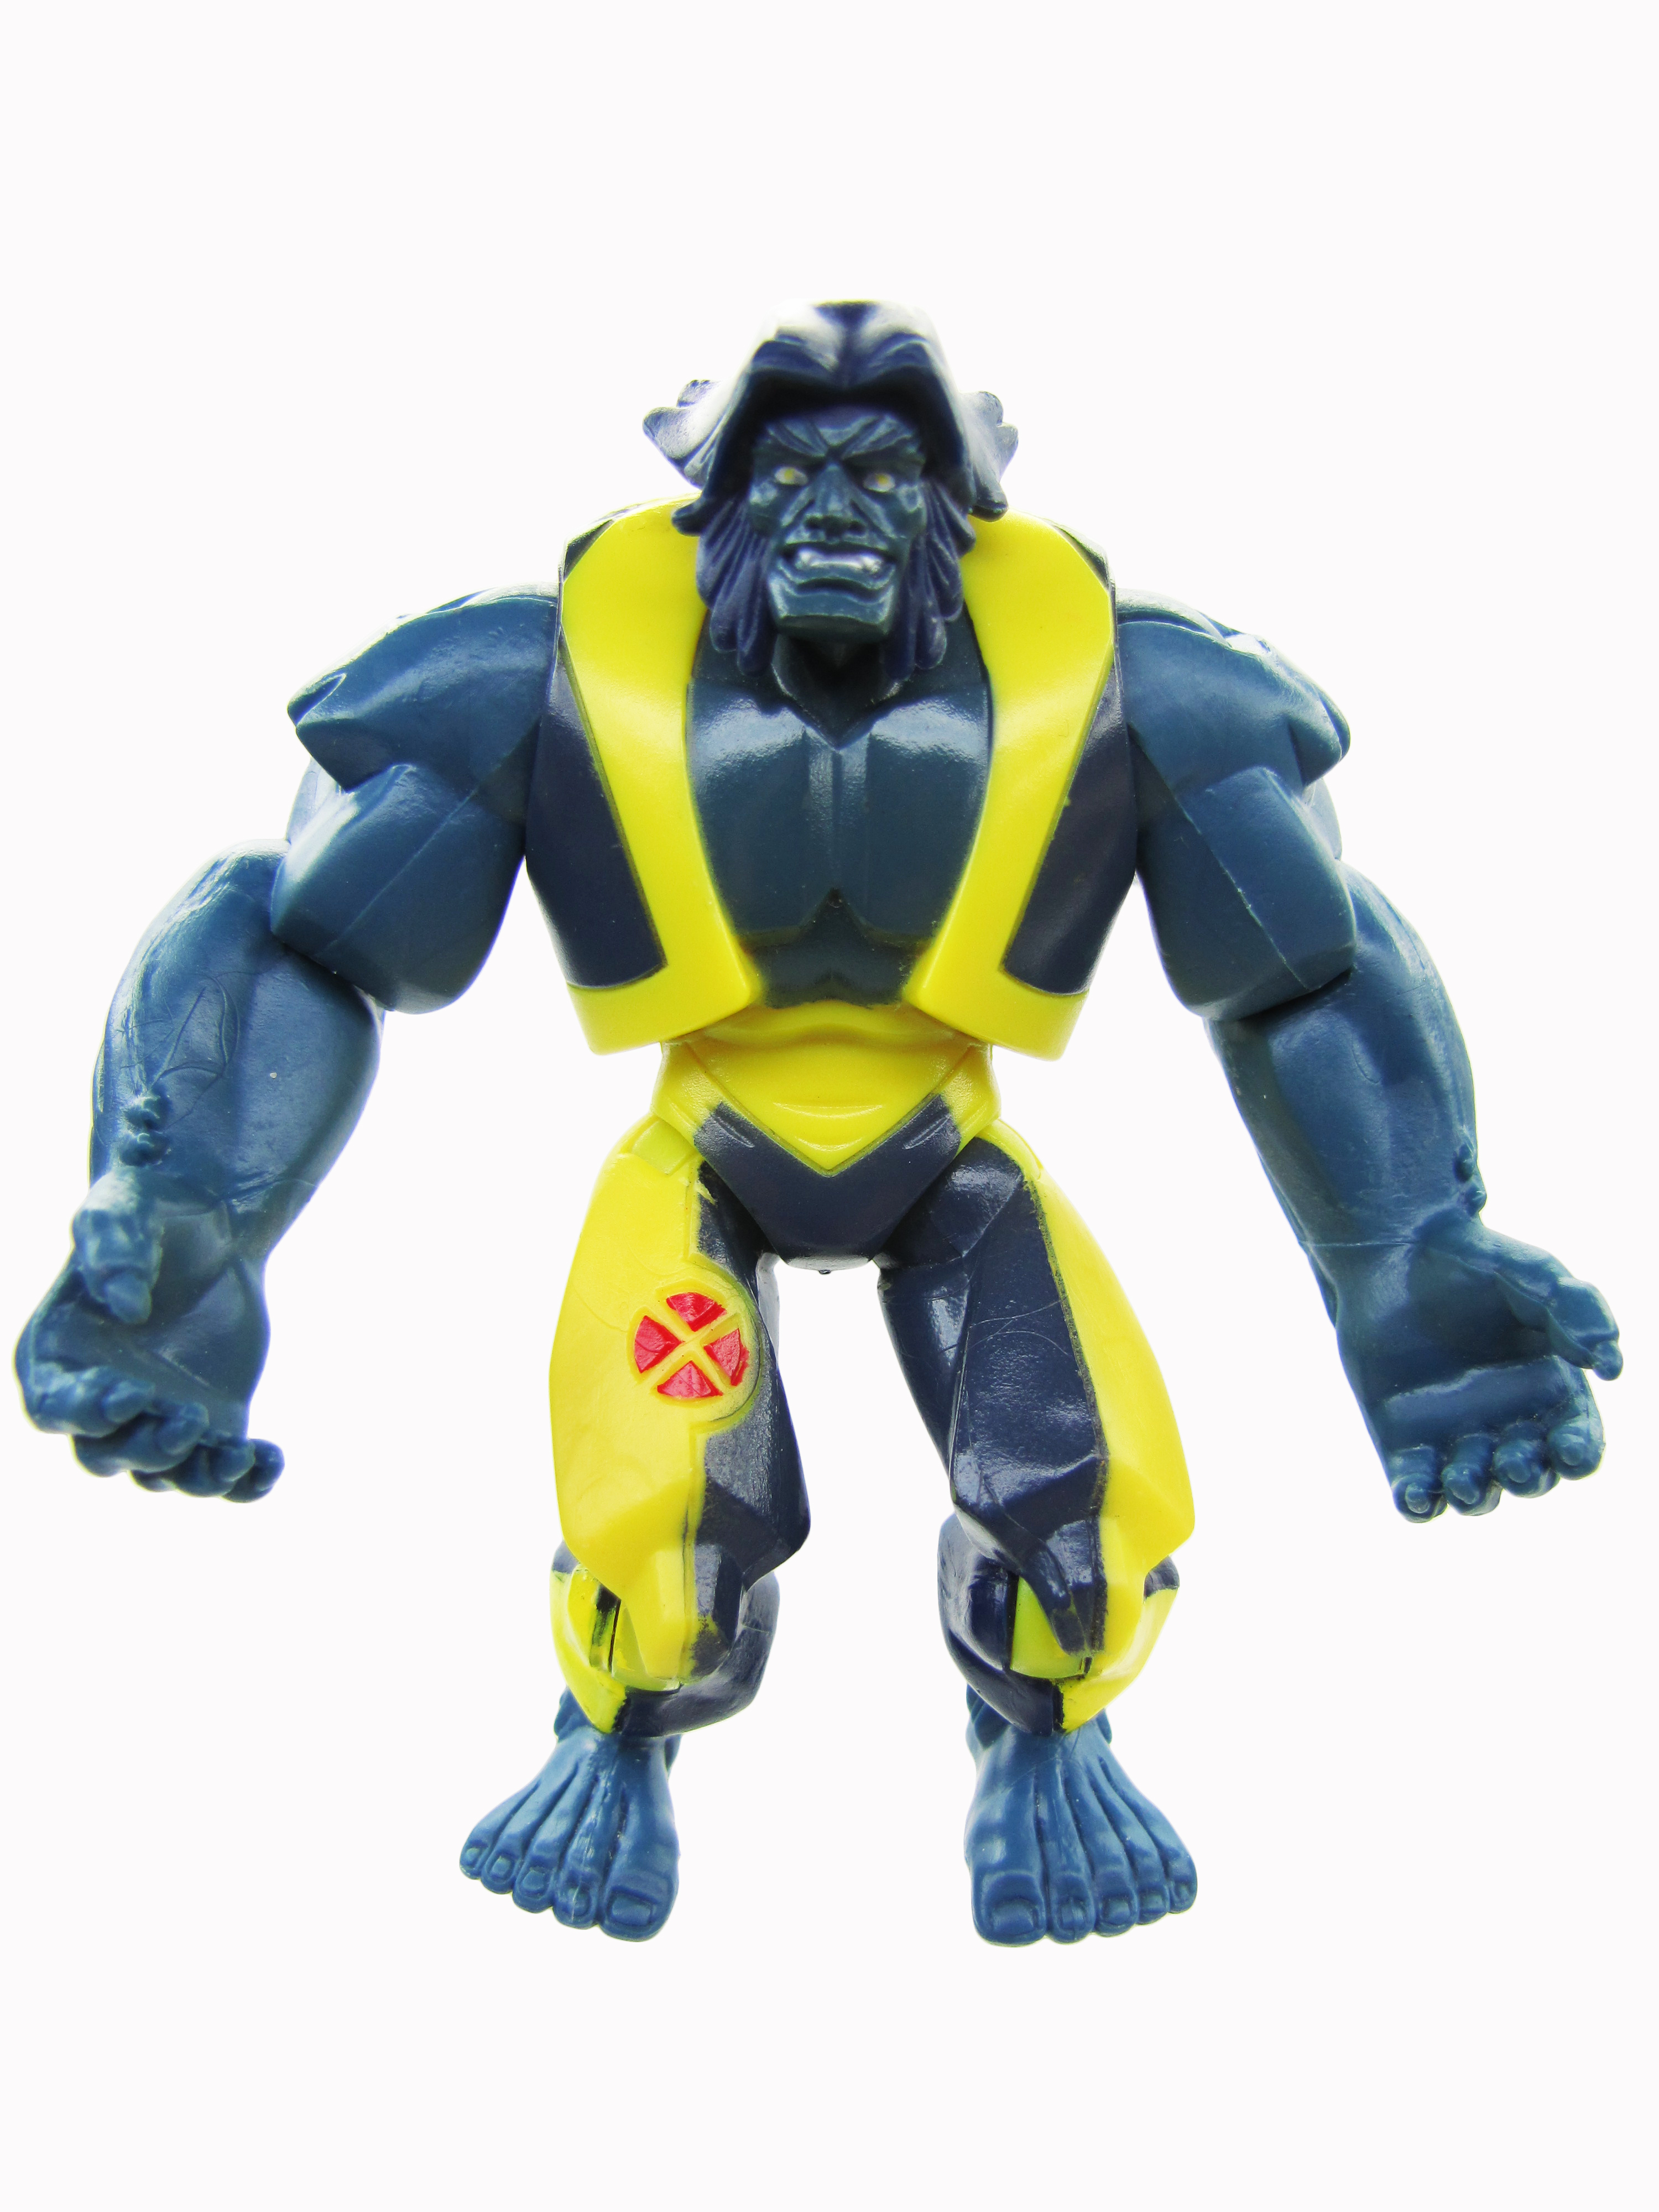 2008 Marvel Wolverine and the X-Men BEAST Good Condition